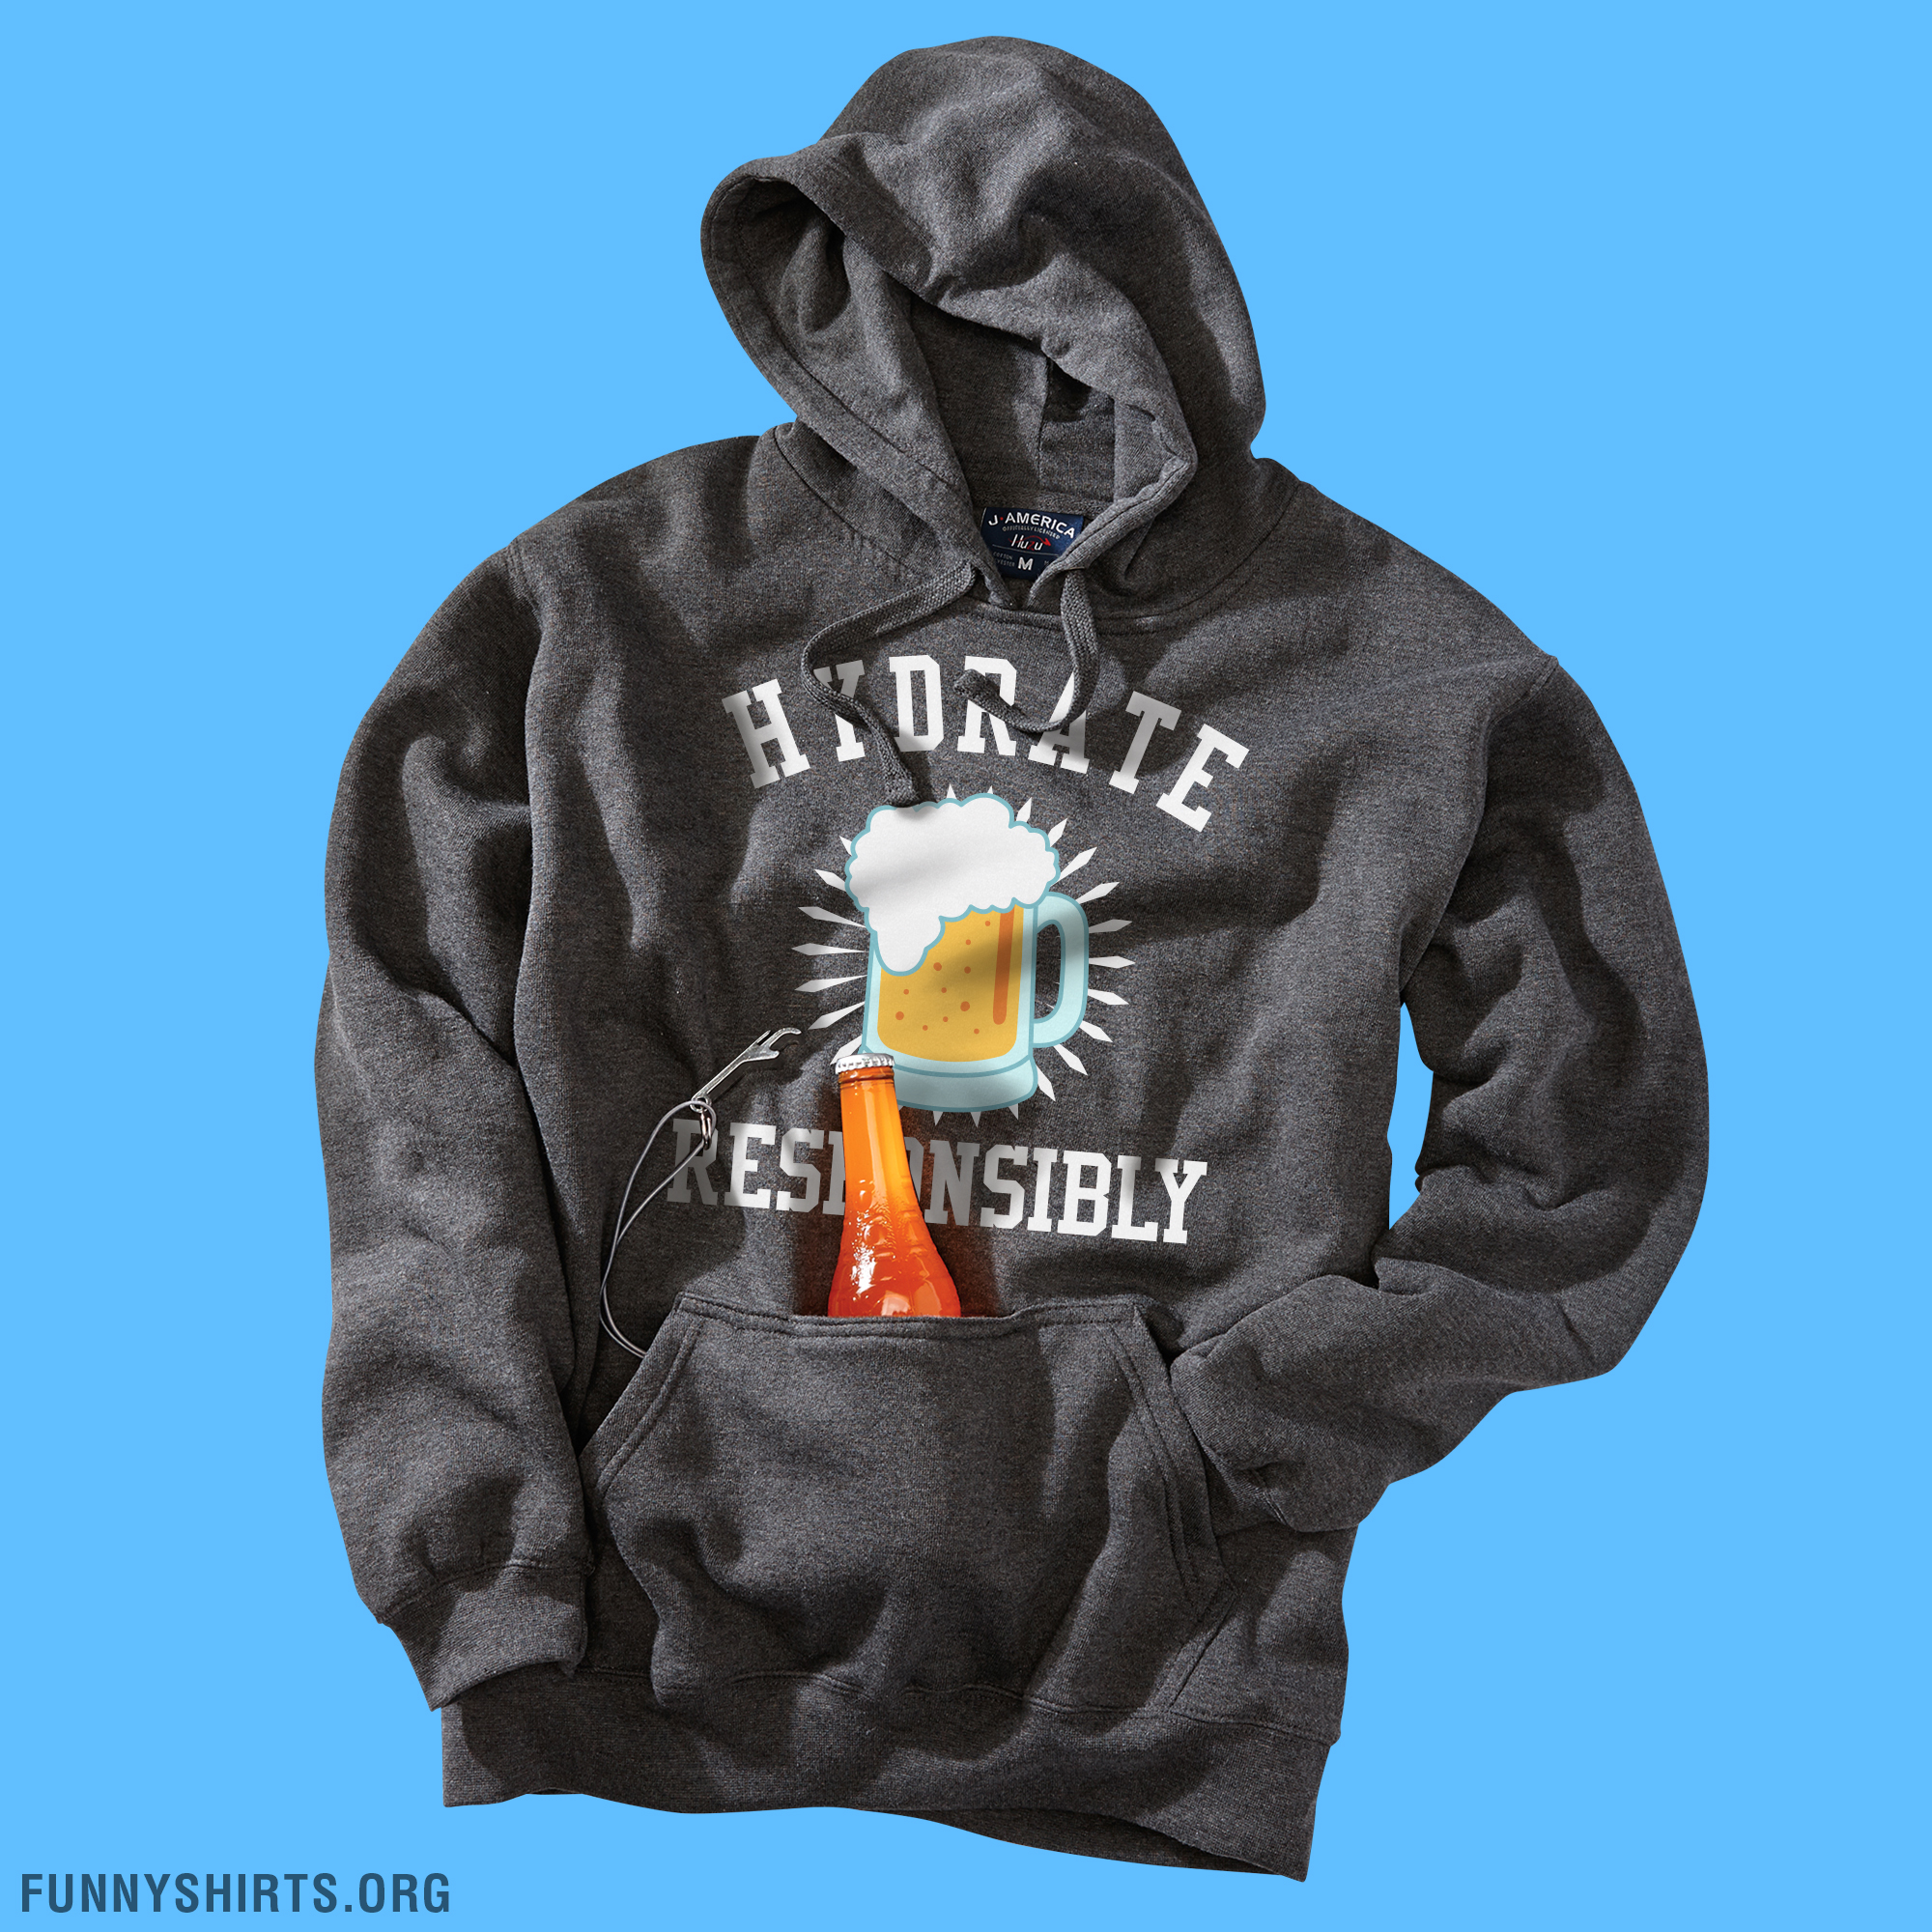 Hydrate Responsibly Hoodie